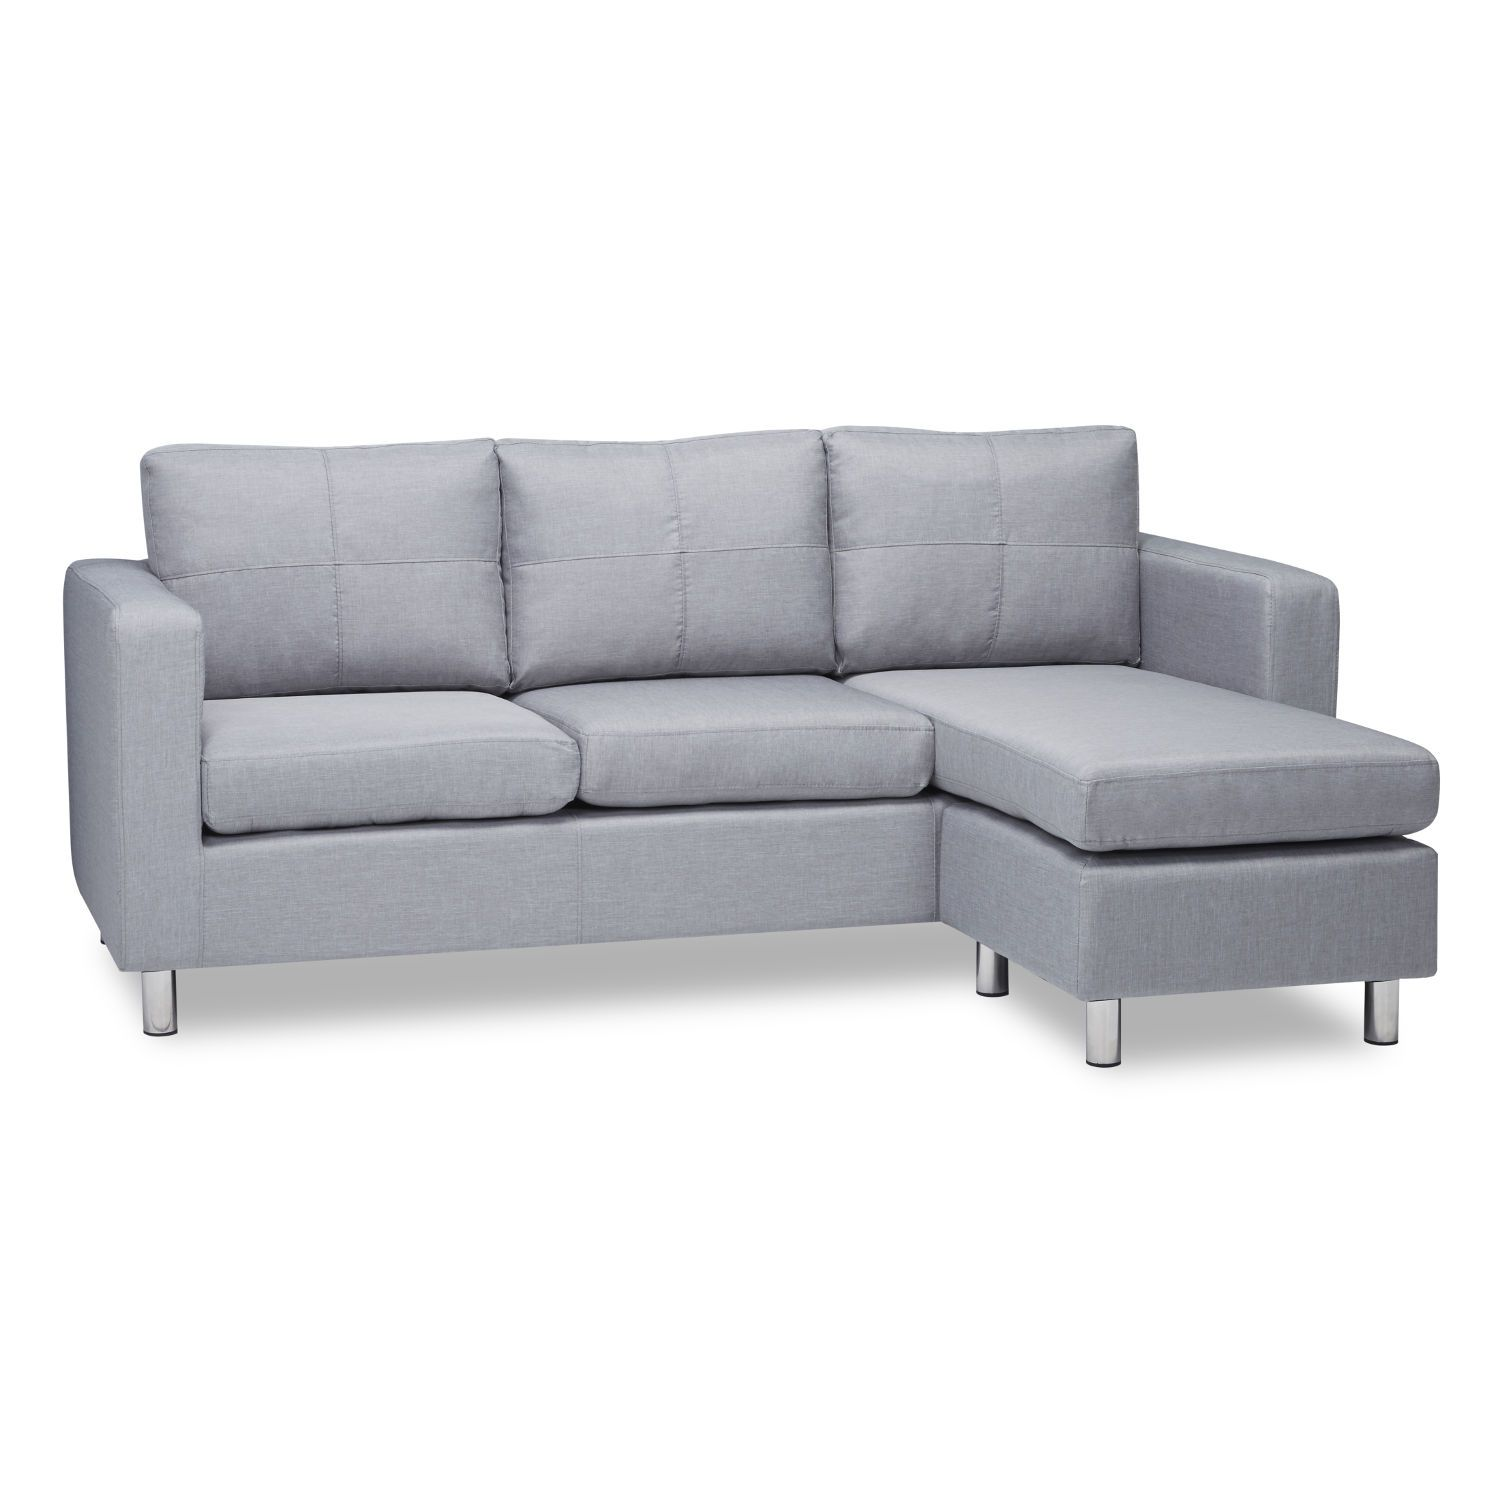 Sofas Score Used Sofa For Sale By Owner Badminton Brokeasshome